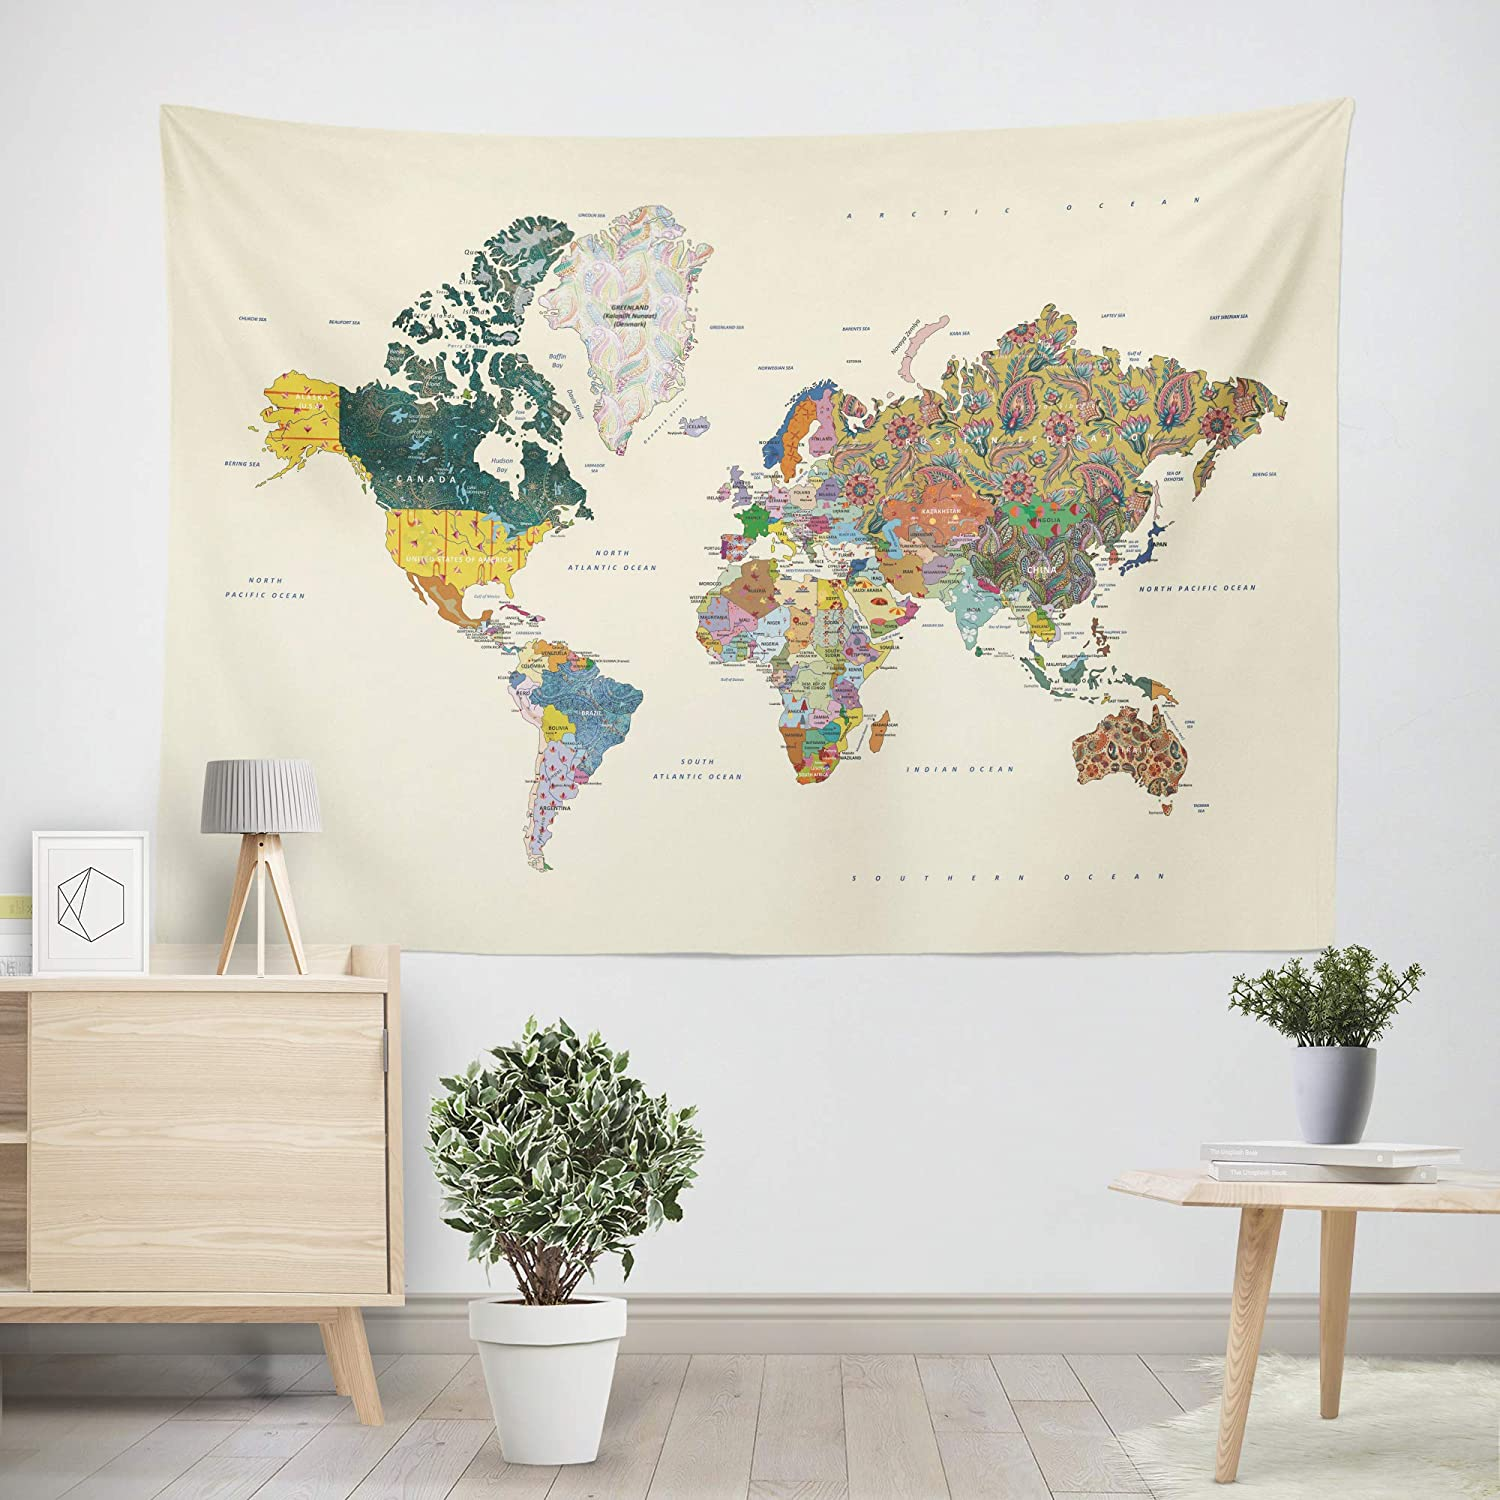 tapestry map of the world Amazon Com Livetty World Map Tapestry Manadala Wall Hanging Map